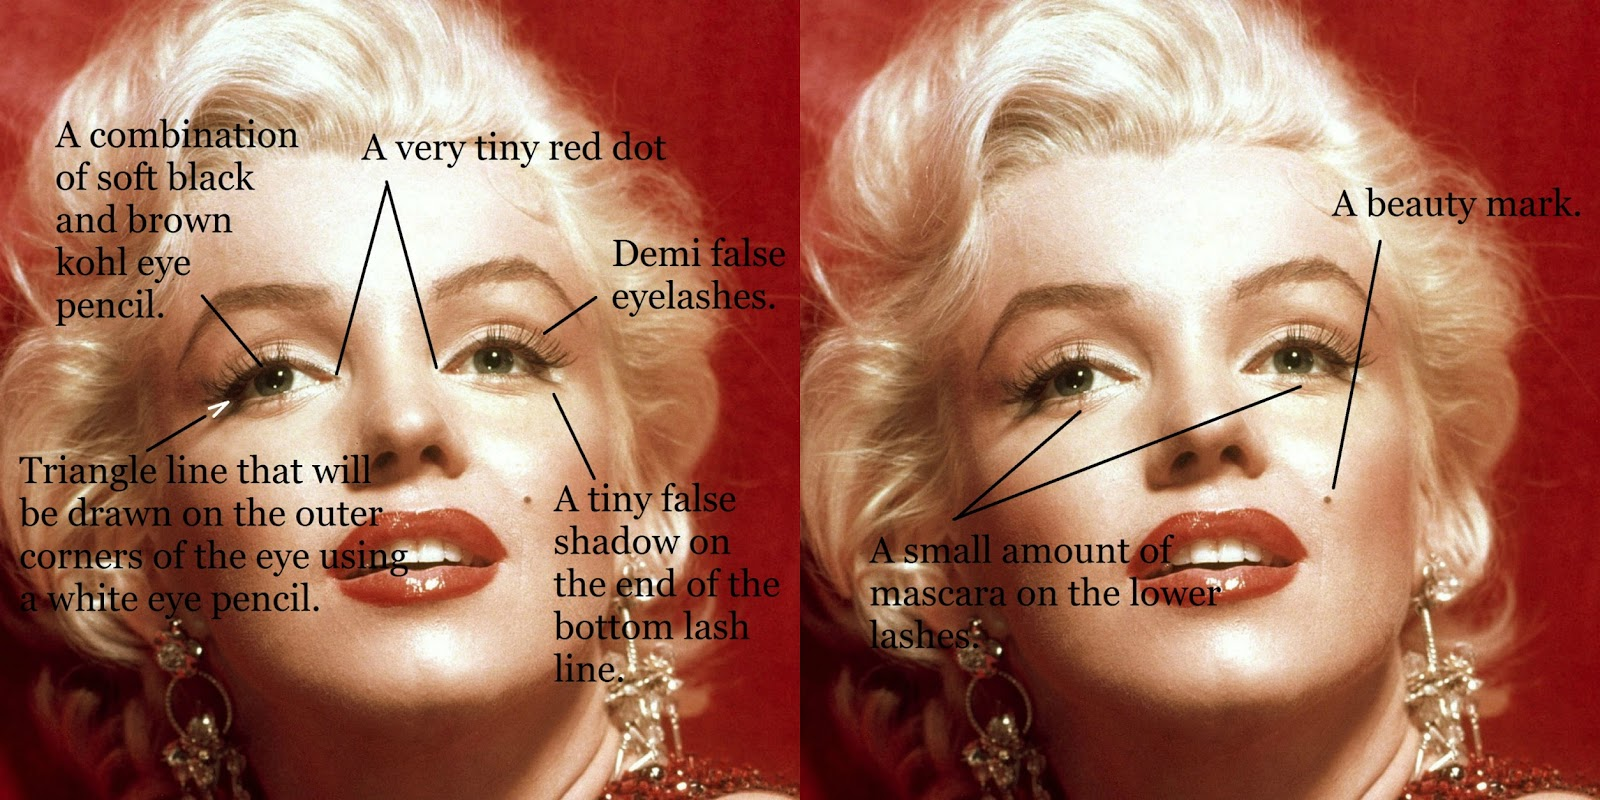 Tanya natazsha marilyn monroes makeup secrets click image to enlarge baditri Images